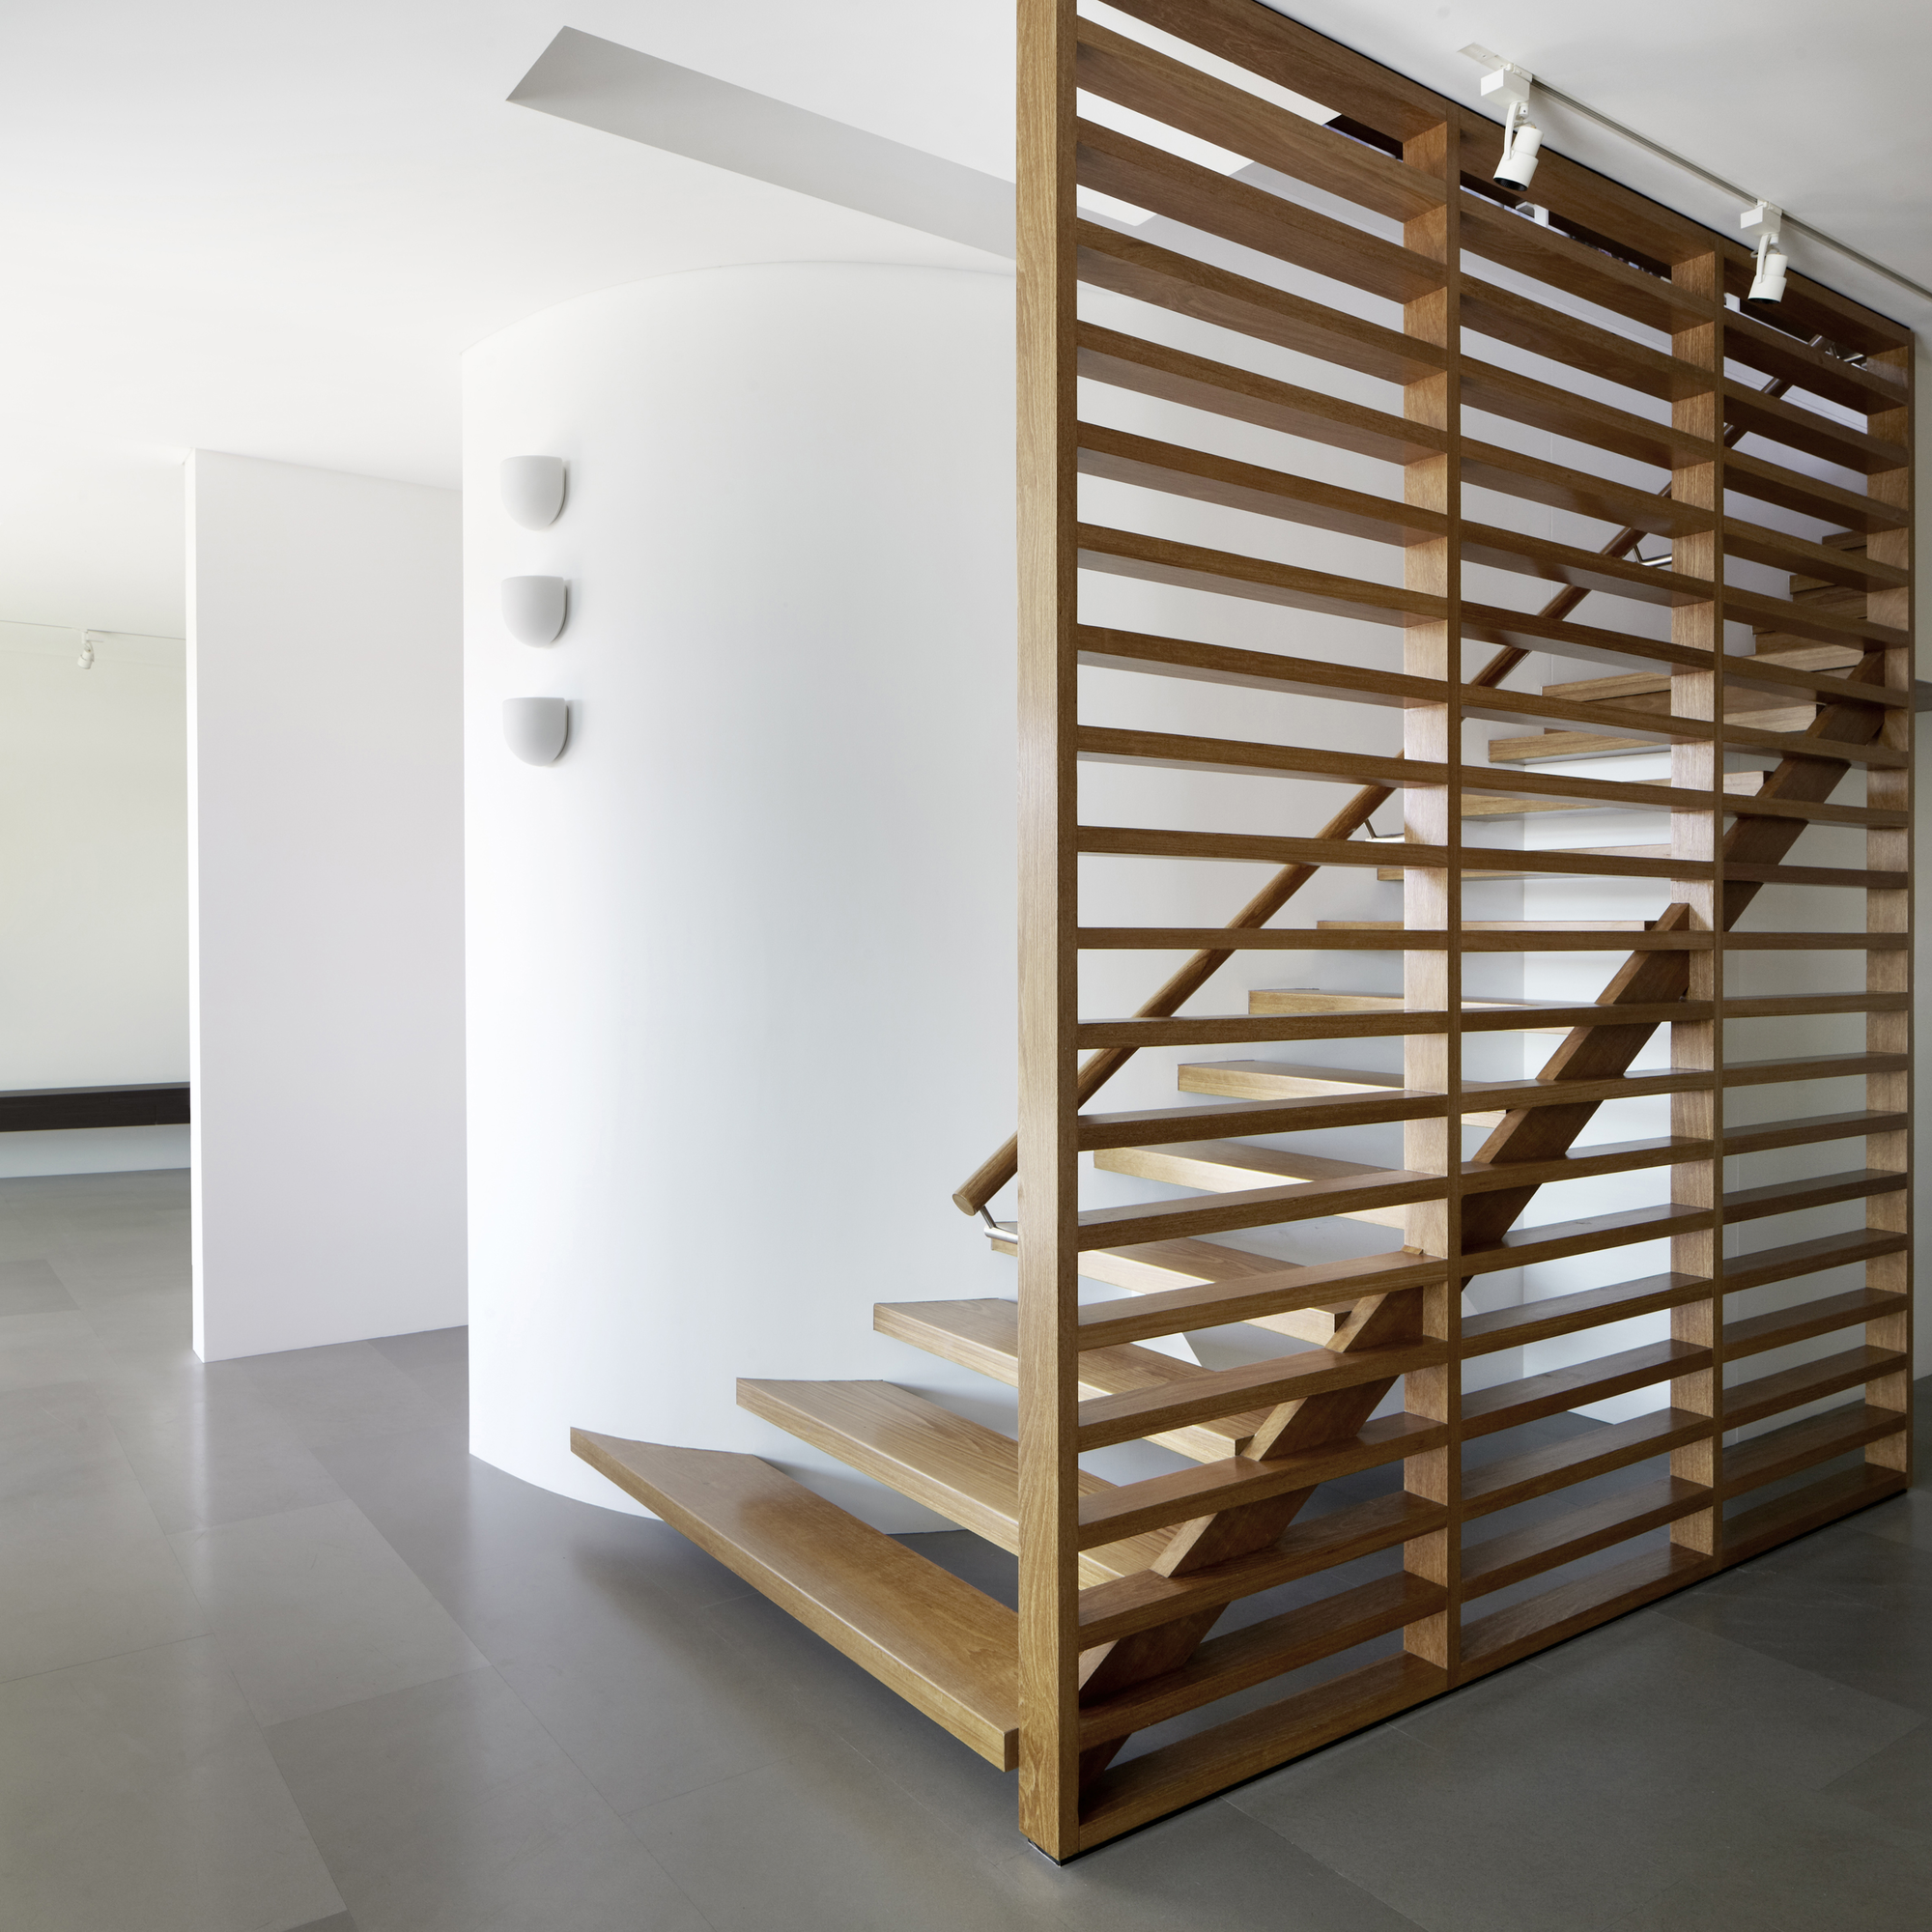 Gallery of wentworth rd house edward szewczyk architects 3 - Tete de marche escalier ...